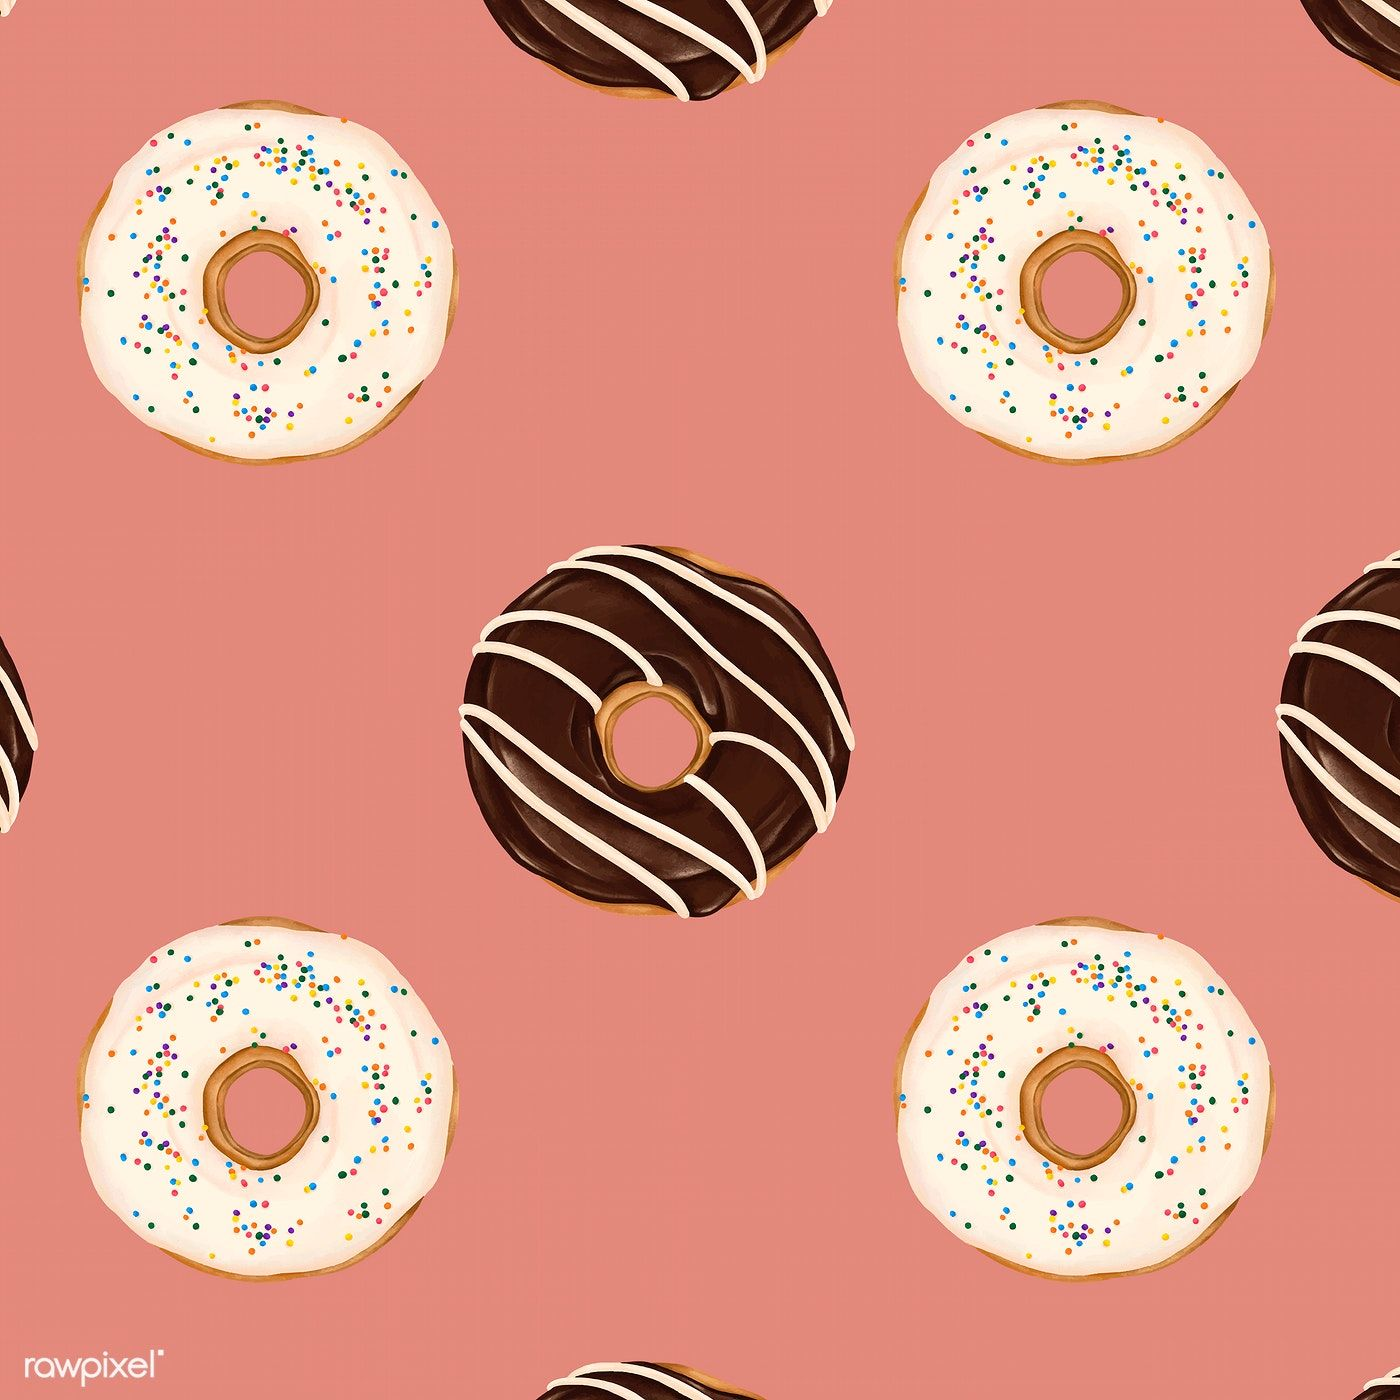 Doughnuts patterned on pink background vector free image